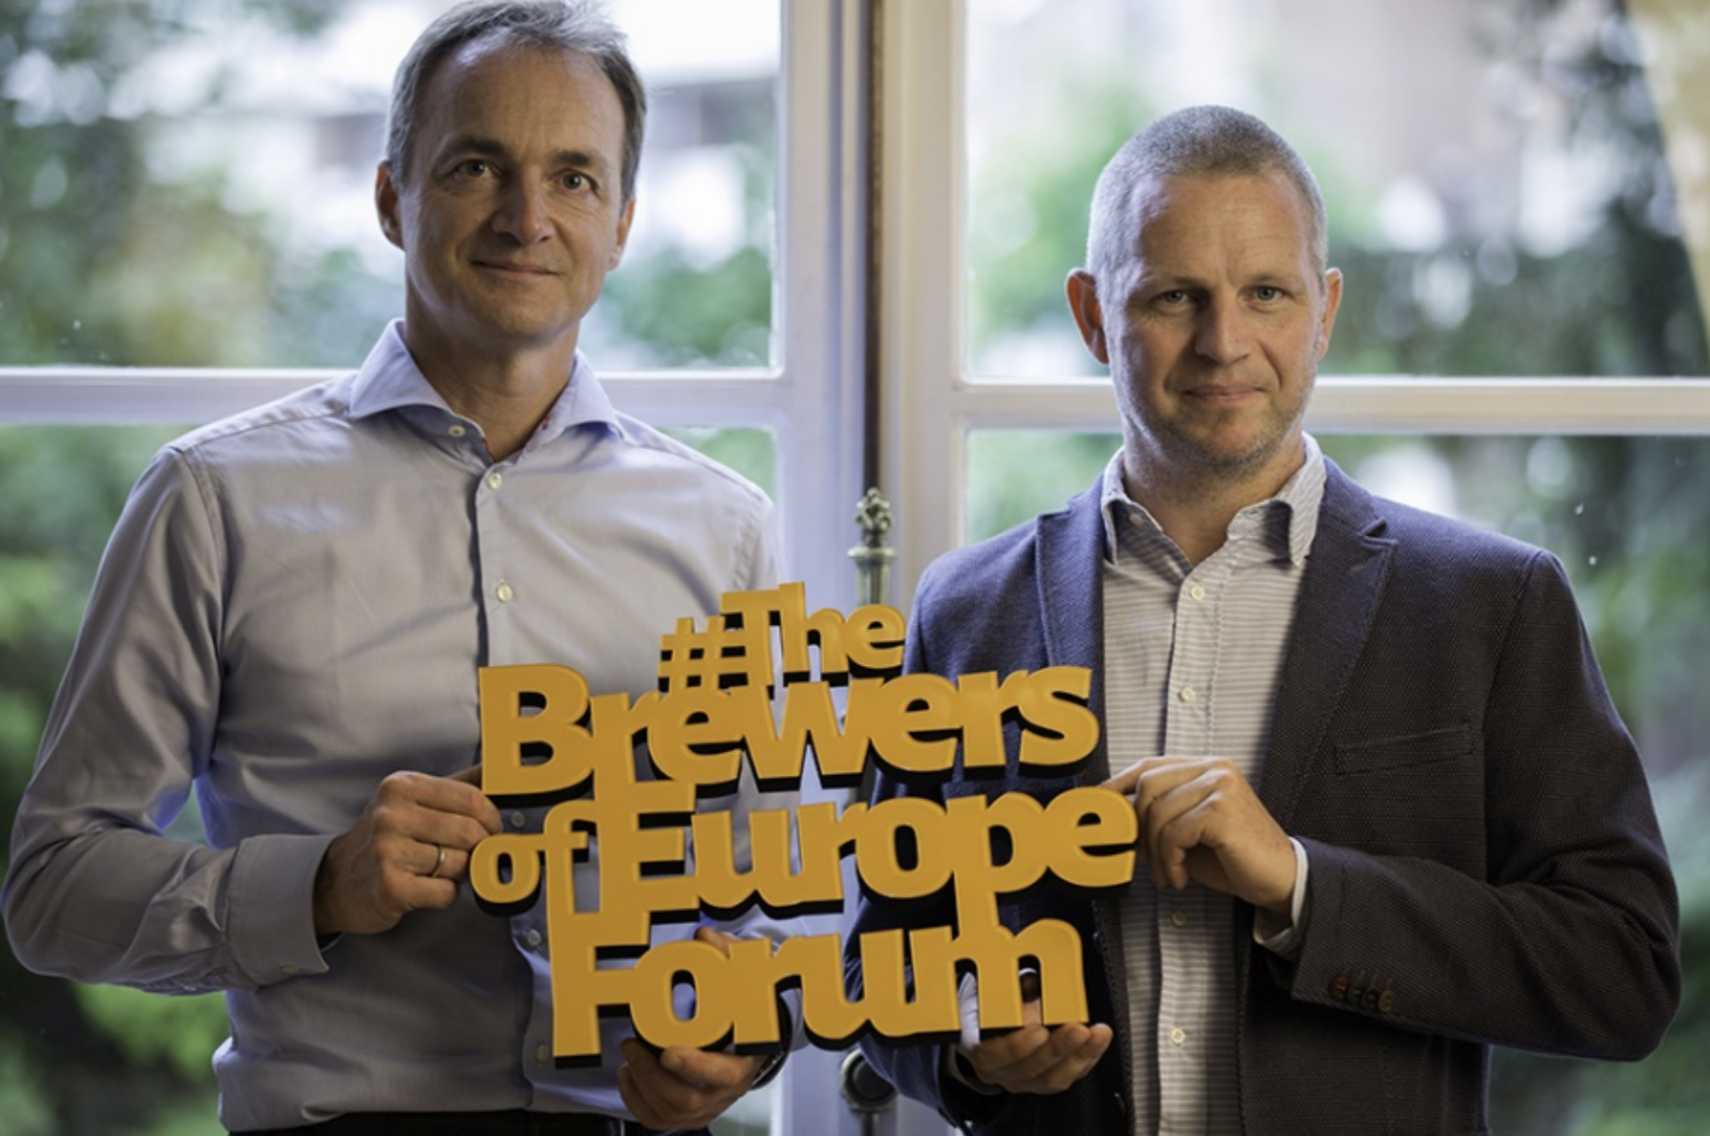 Brewers Forum